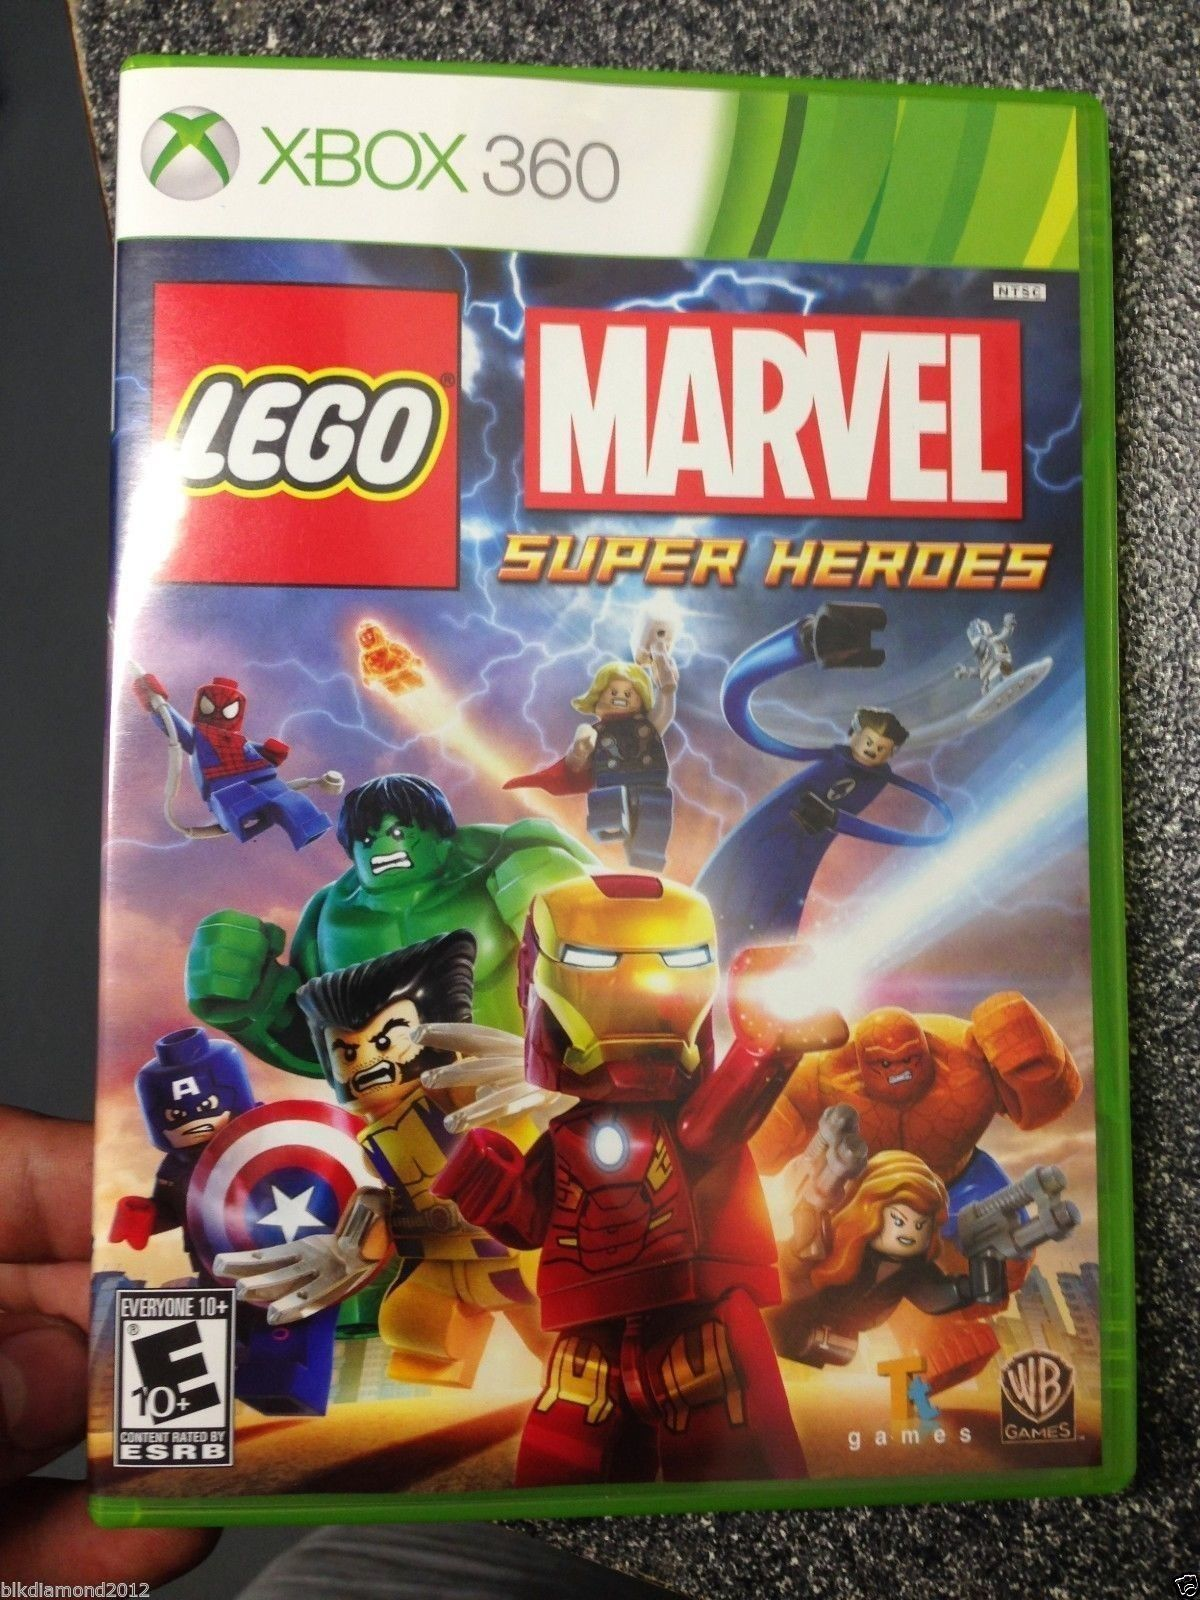 LEGO Marvel Super Heroes xbox 360 video game new release